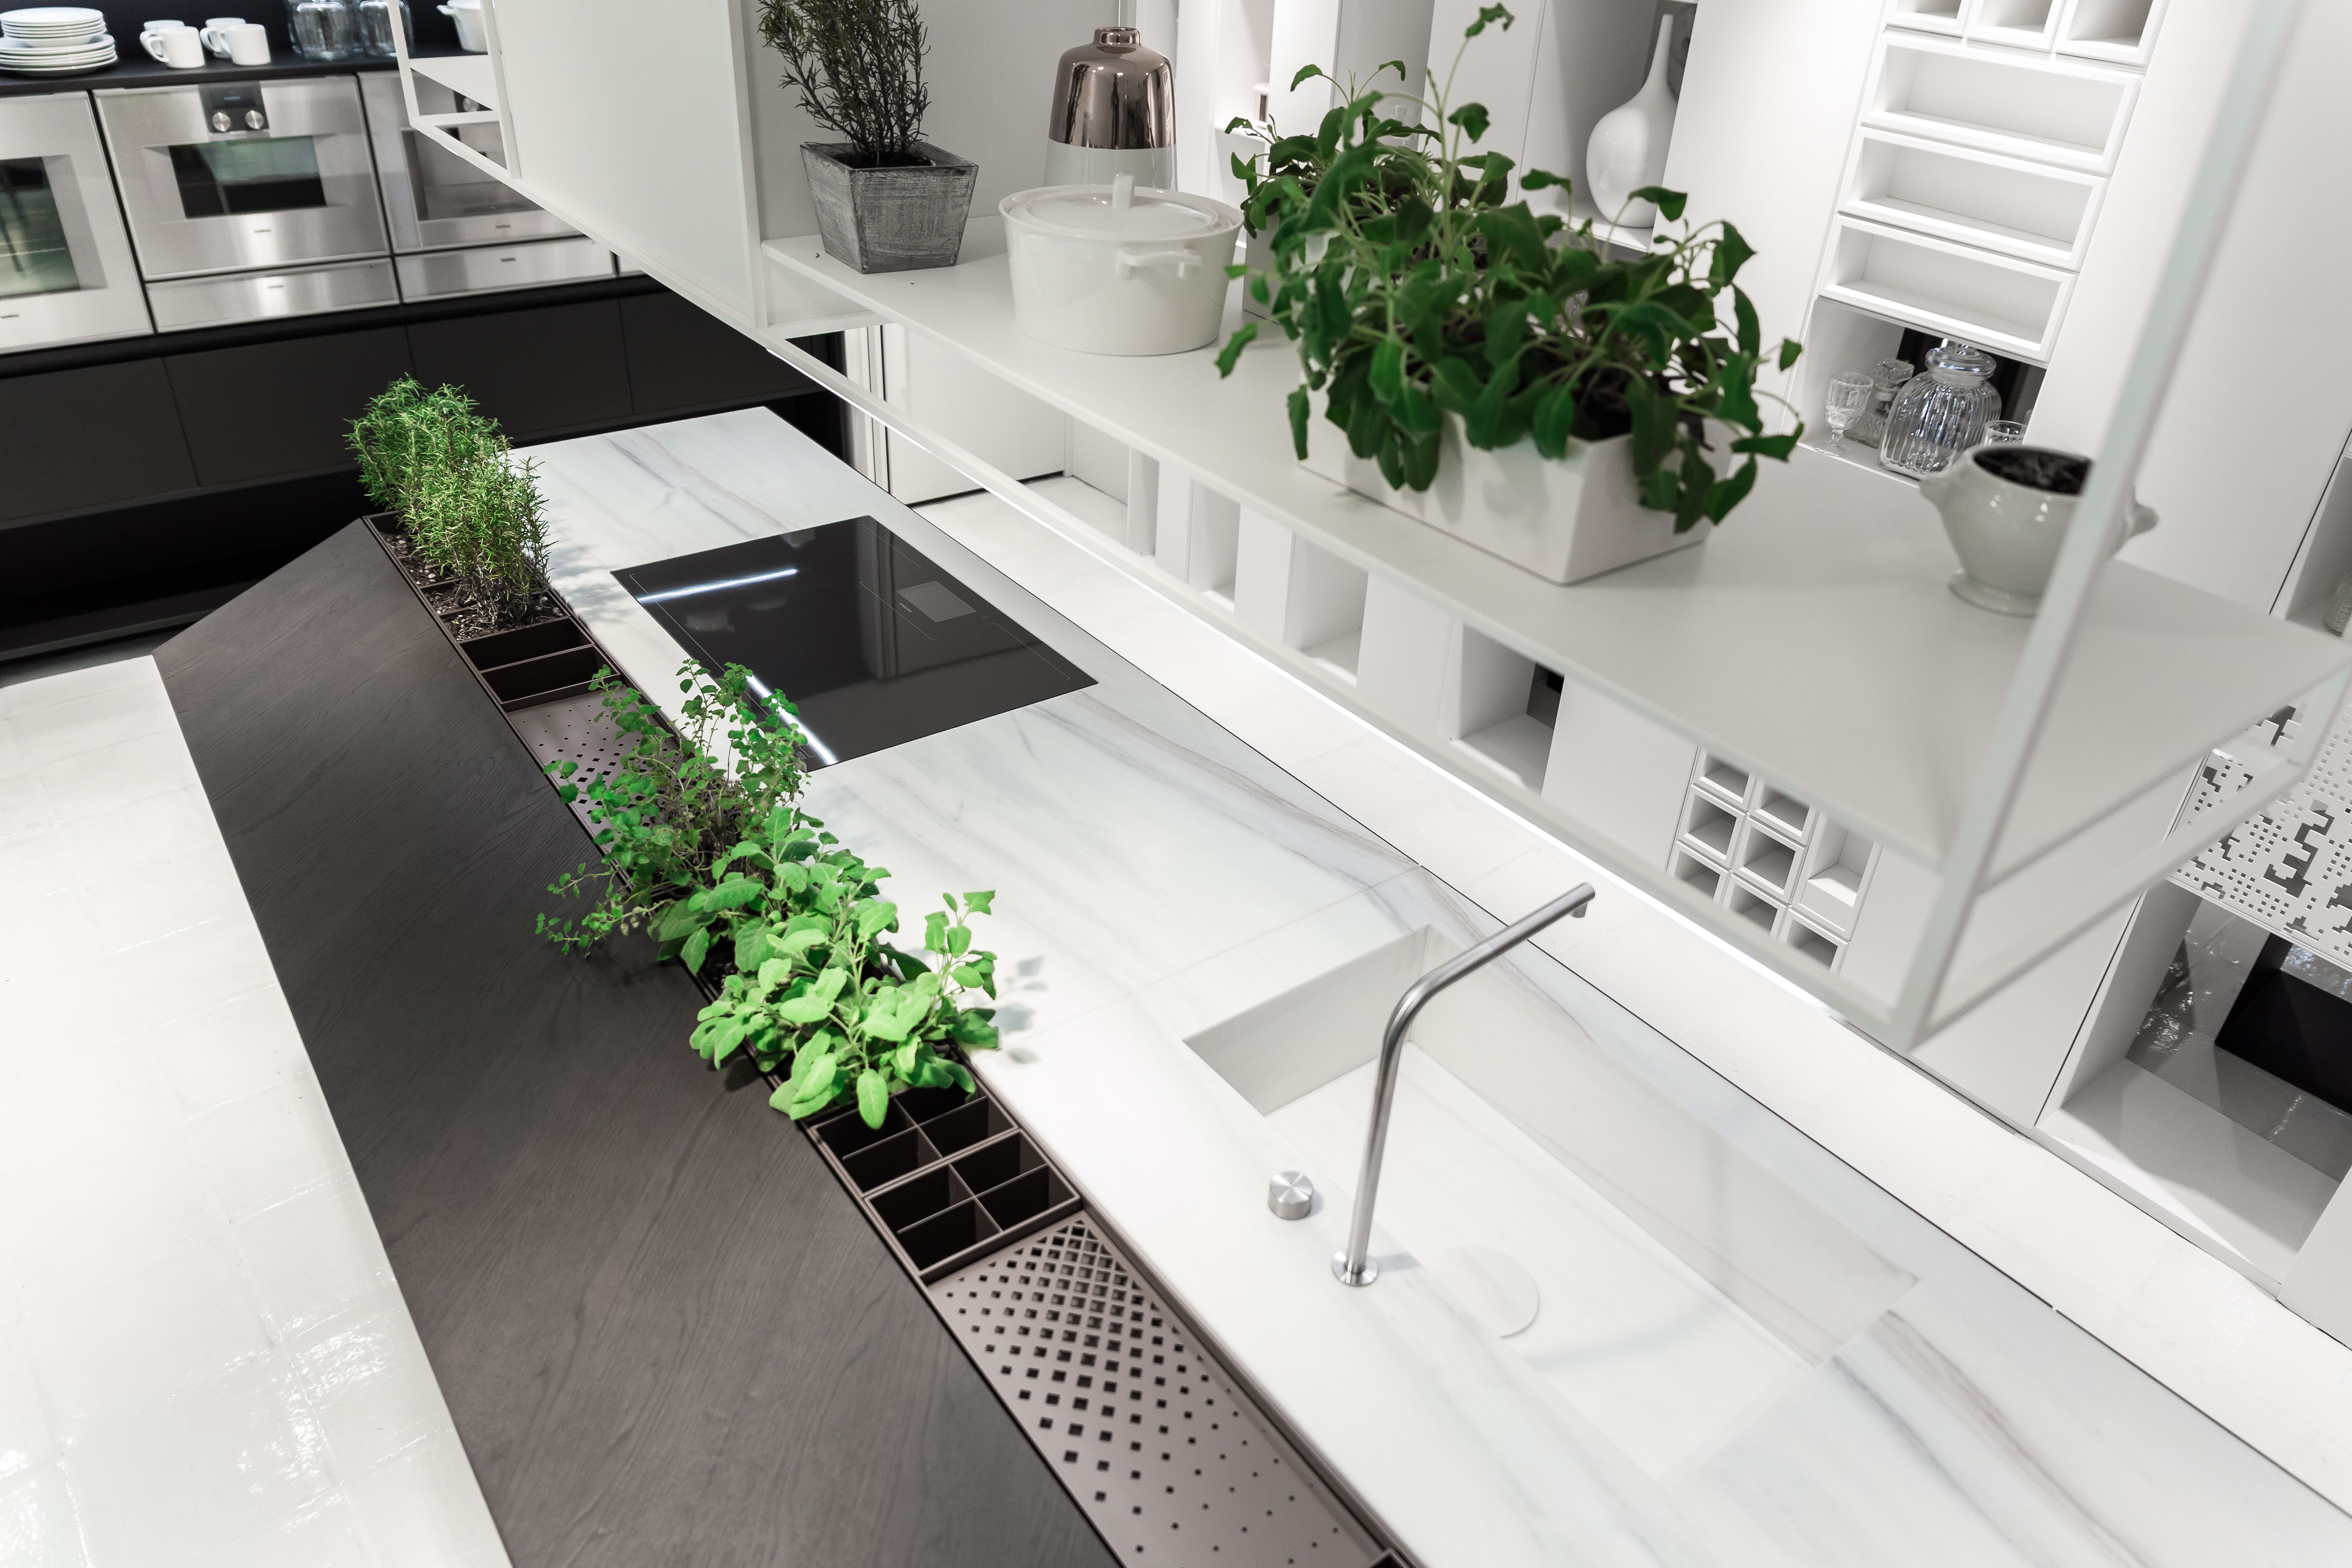 MiaCucina - Ego by The Cut Kitchen | THE CUT KITCHEN | Pinterest ...